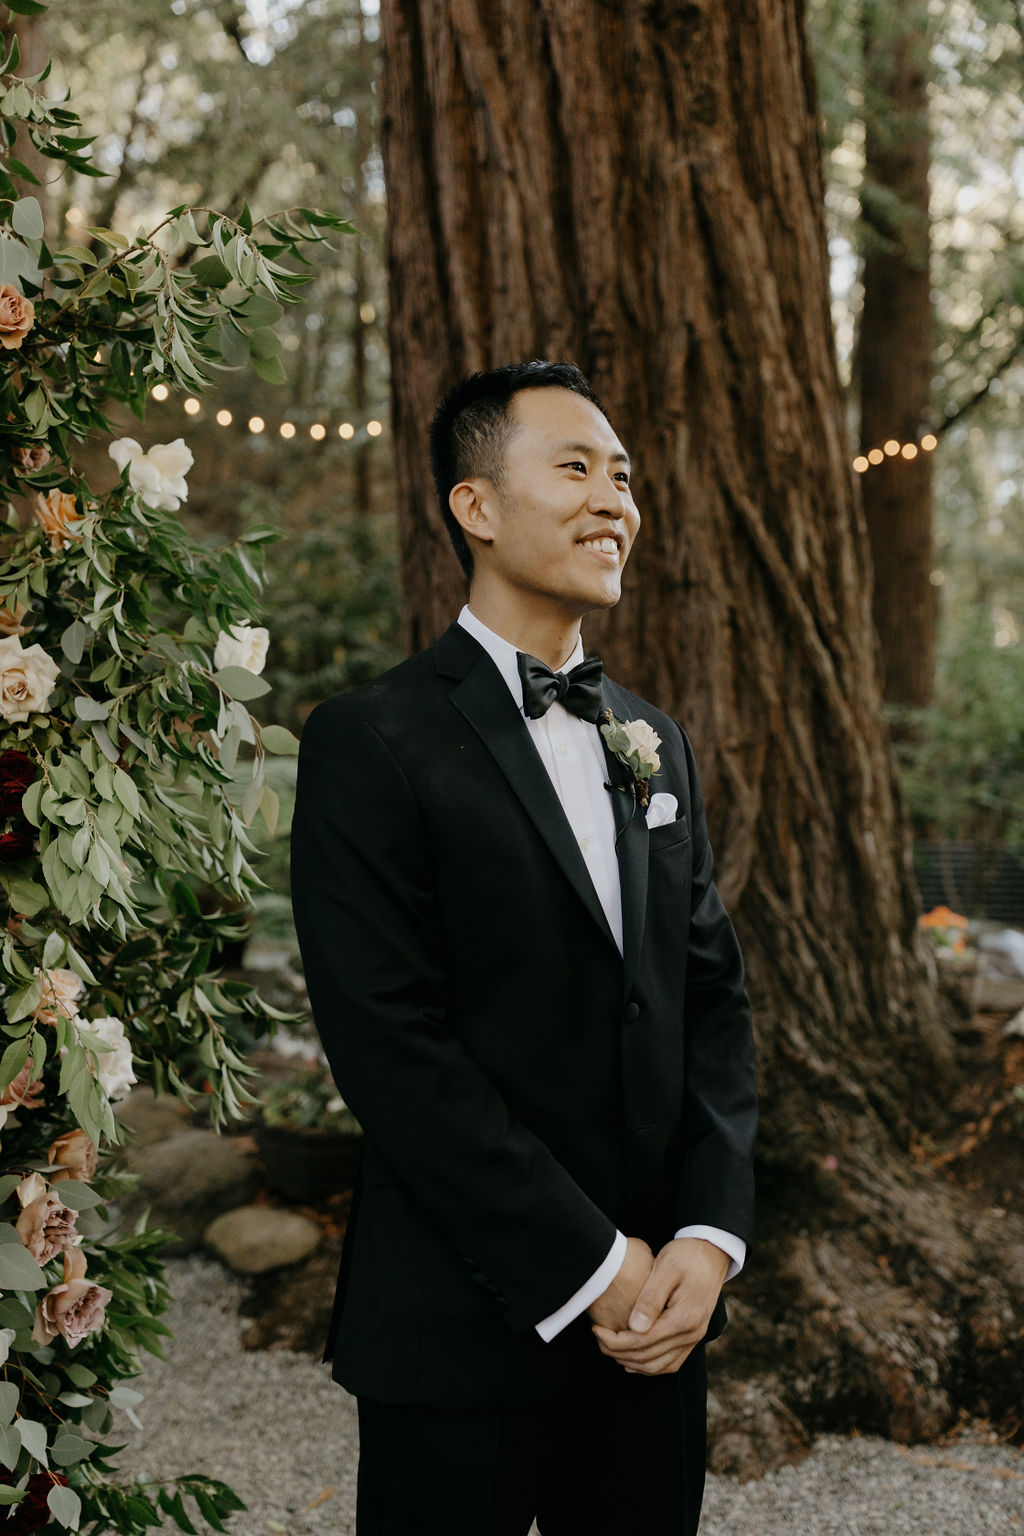 Deer Park Villa Wedding Planner Perfectly Planned Moments Nirav Patel Photography Ceremony Groom.JPG